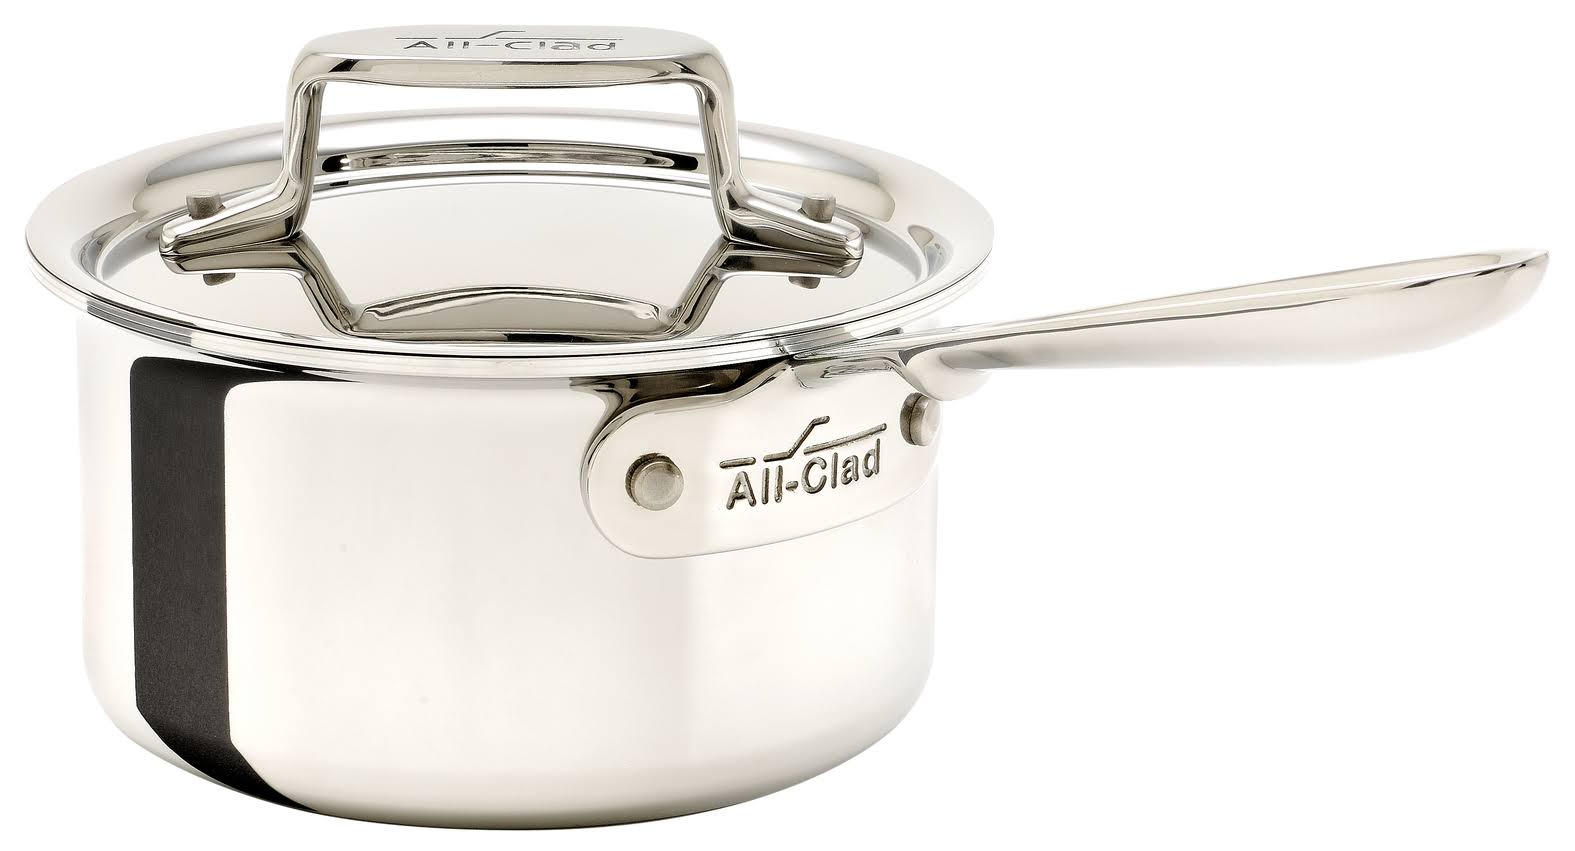 All-Clad D5 Stainless Steel 1 12 qt. Saucepan